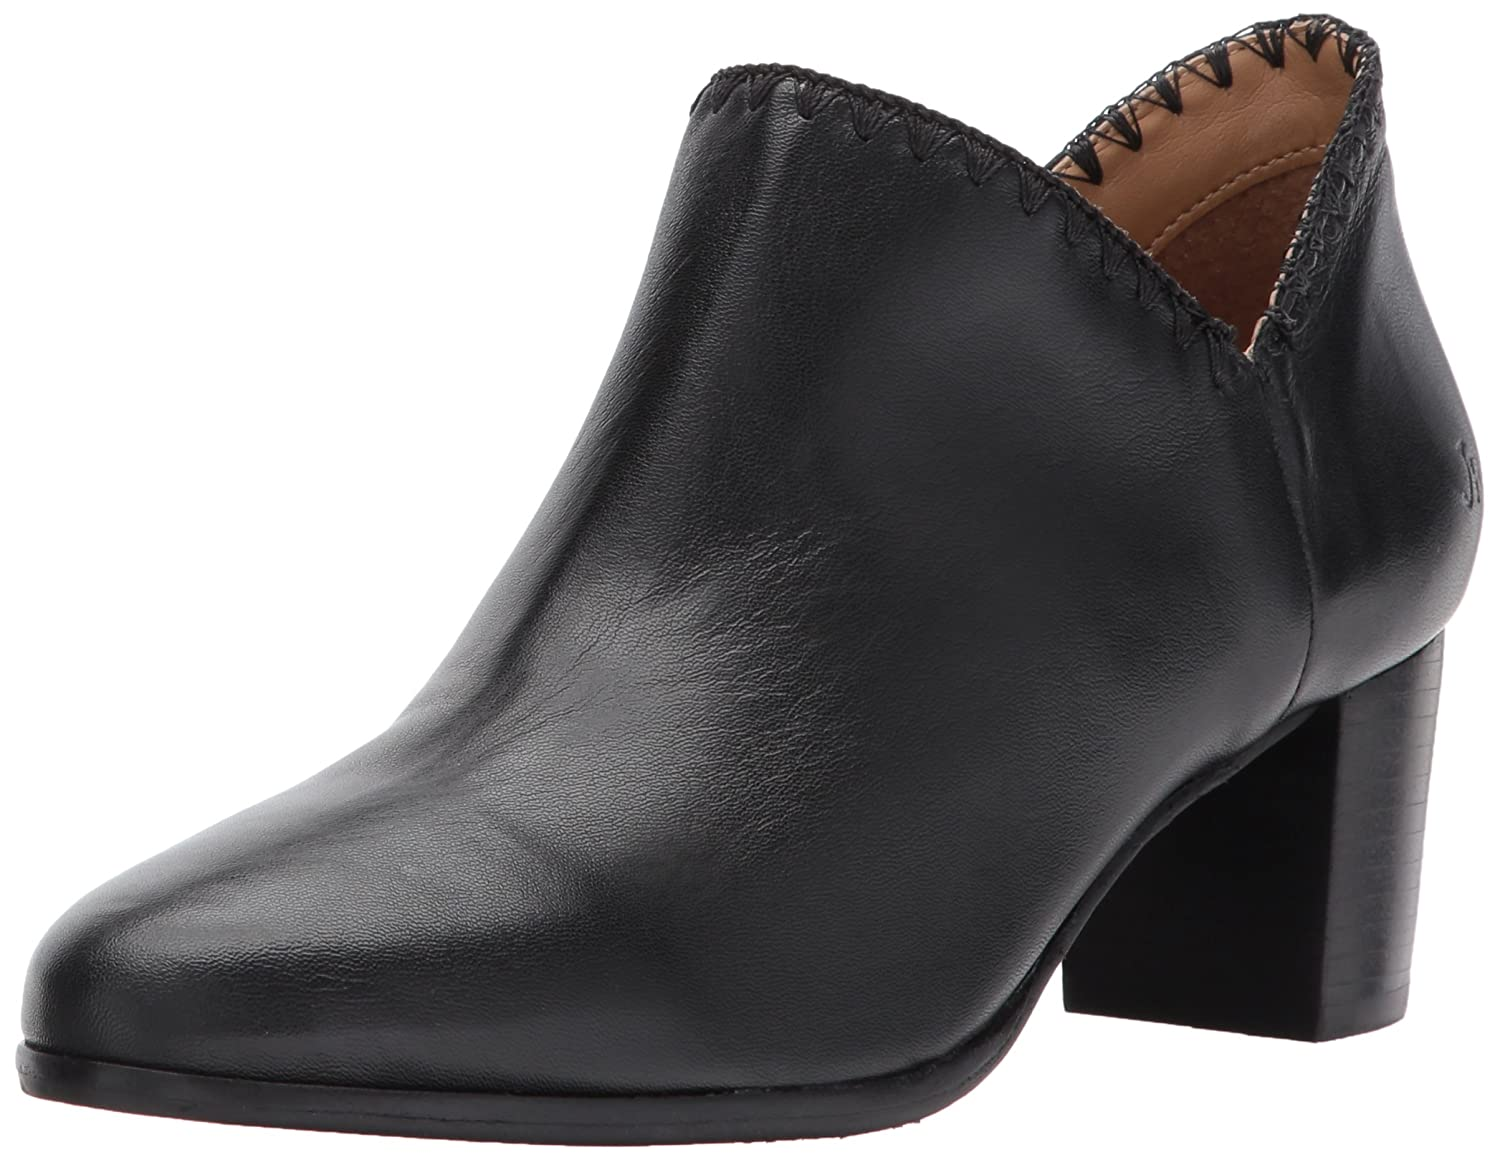 Jack Rogers Women's Marlow Ankle B01MS0843X Bootie B01MS0843X Ankle 5.5 M US|Black 3005b4